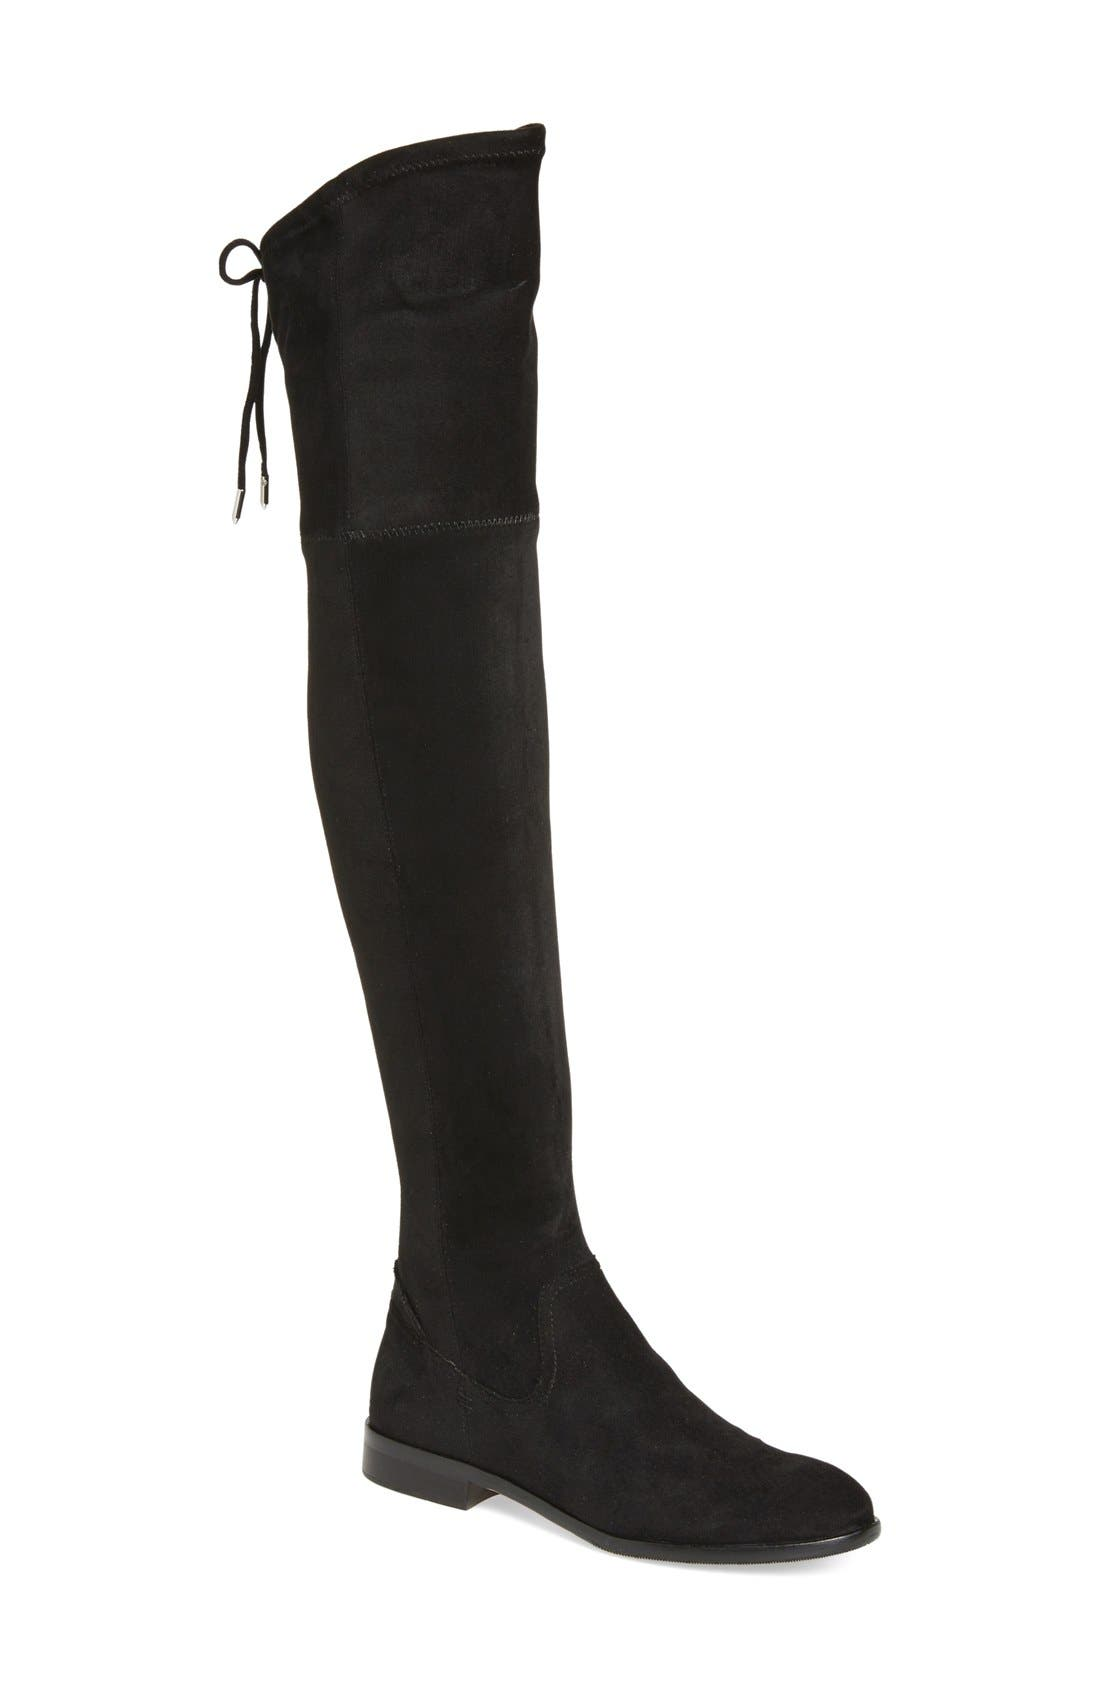 'Neely' Over the Knee Boot,                             Main thumbnail 1, color,                             001